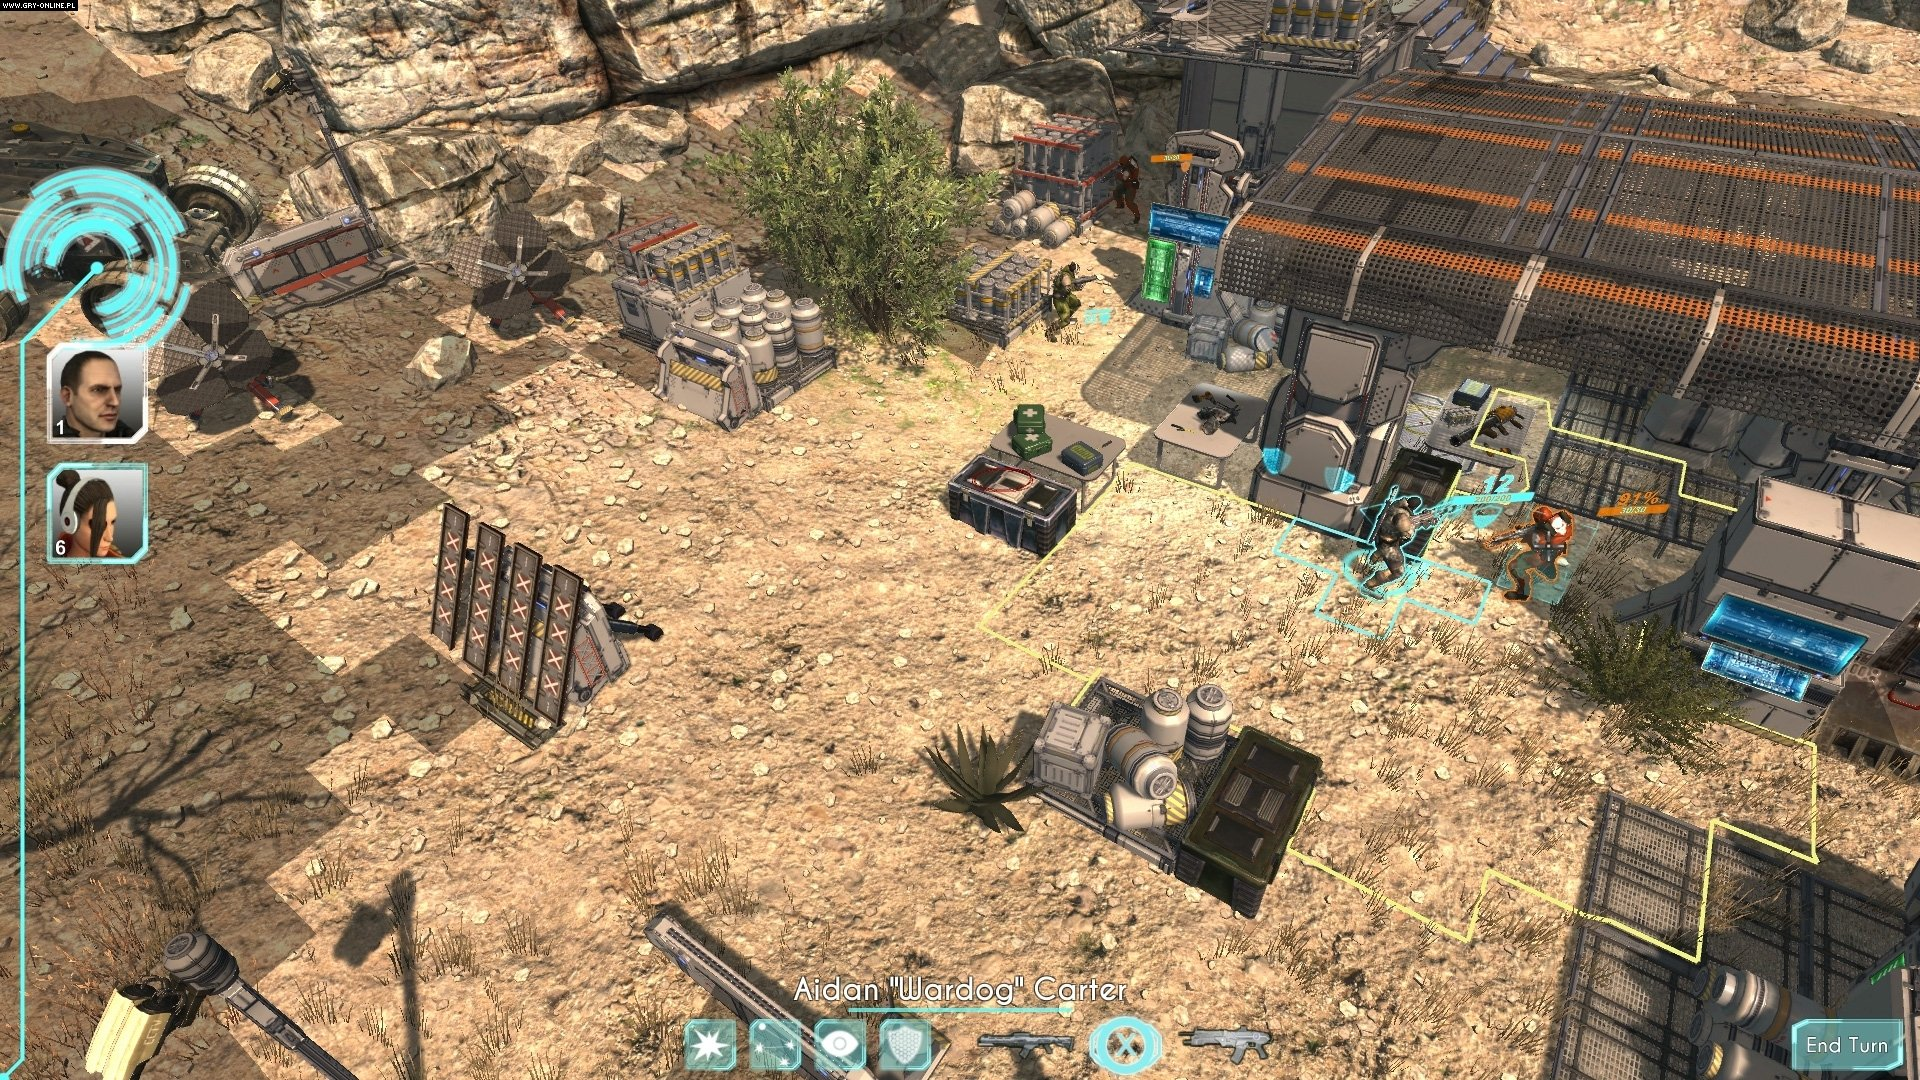 Shock Tactics PC Games Image 8/9, Point Blank Games, EuroVideo Medien